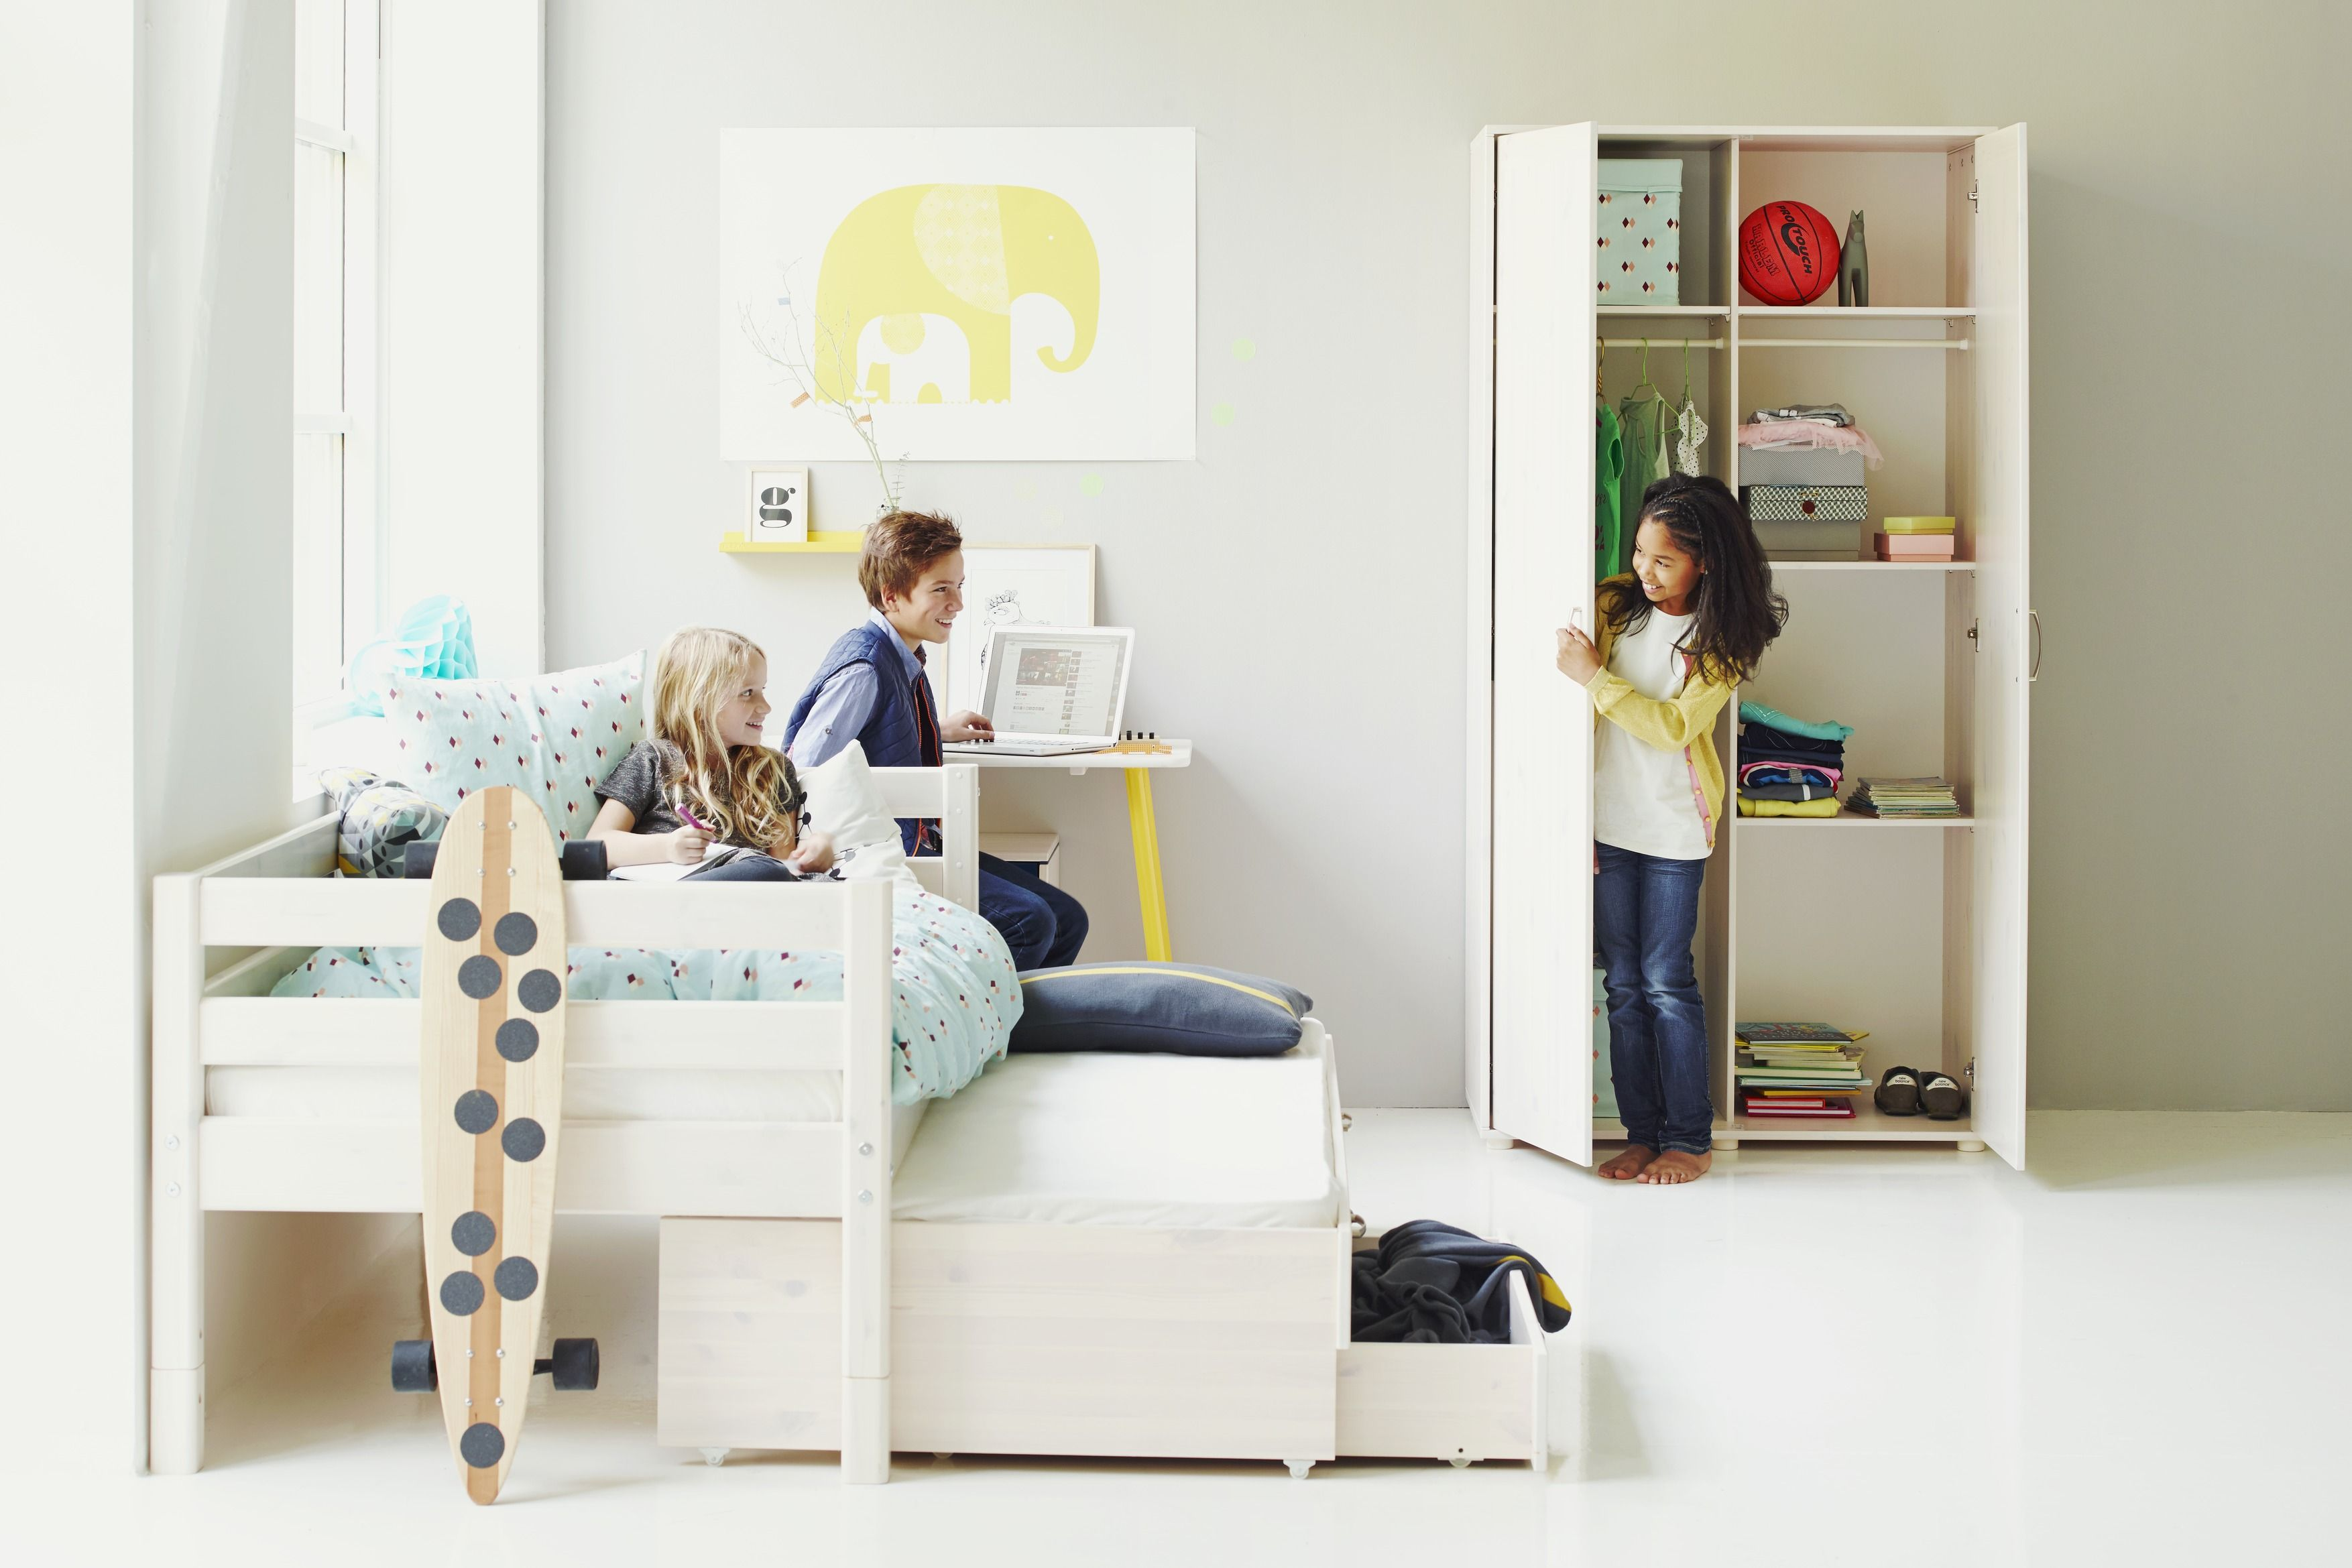 kinderzimmer mit bett flexa classic individuell zusammenstellbar und schrank flexa classic. Black Bedroom Furniture Sets. Home Design Ideas